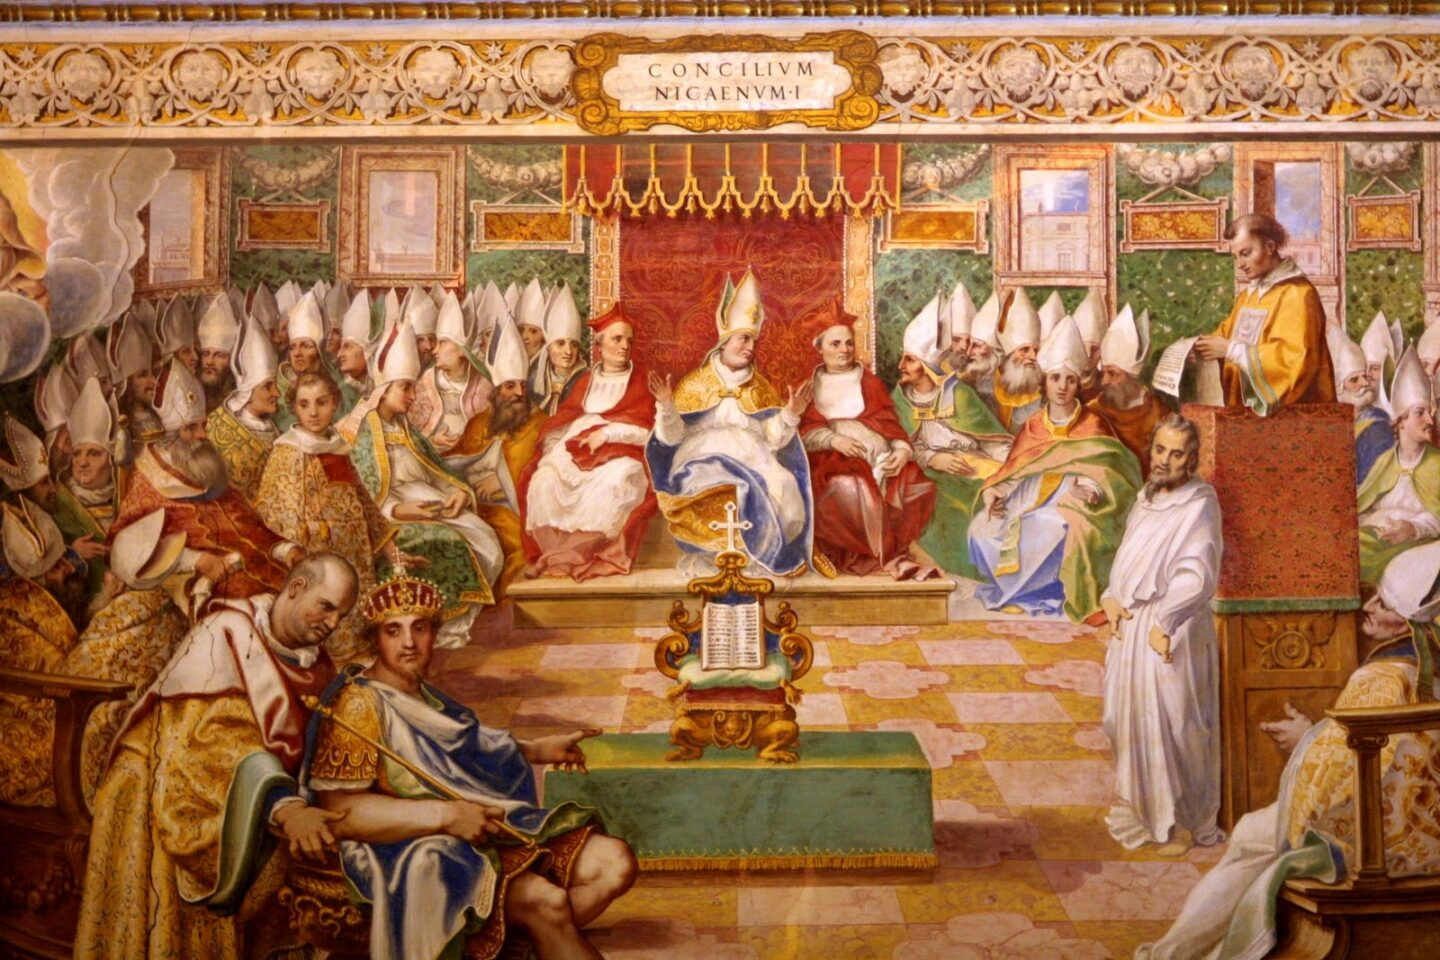 Synodality, not democracy. Pope Francis does not instigate a revolution, and Germany has entered Luther's path